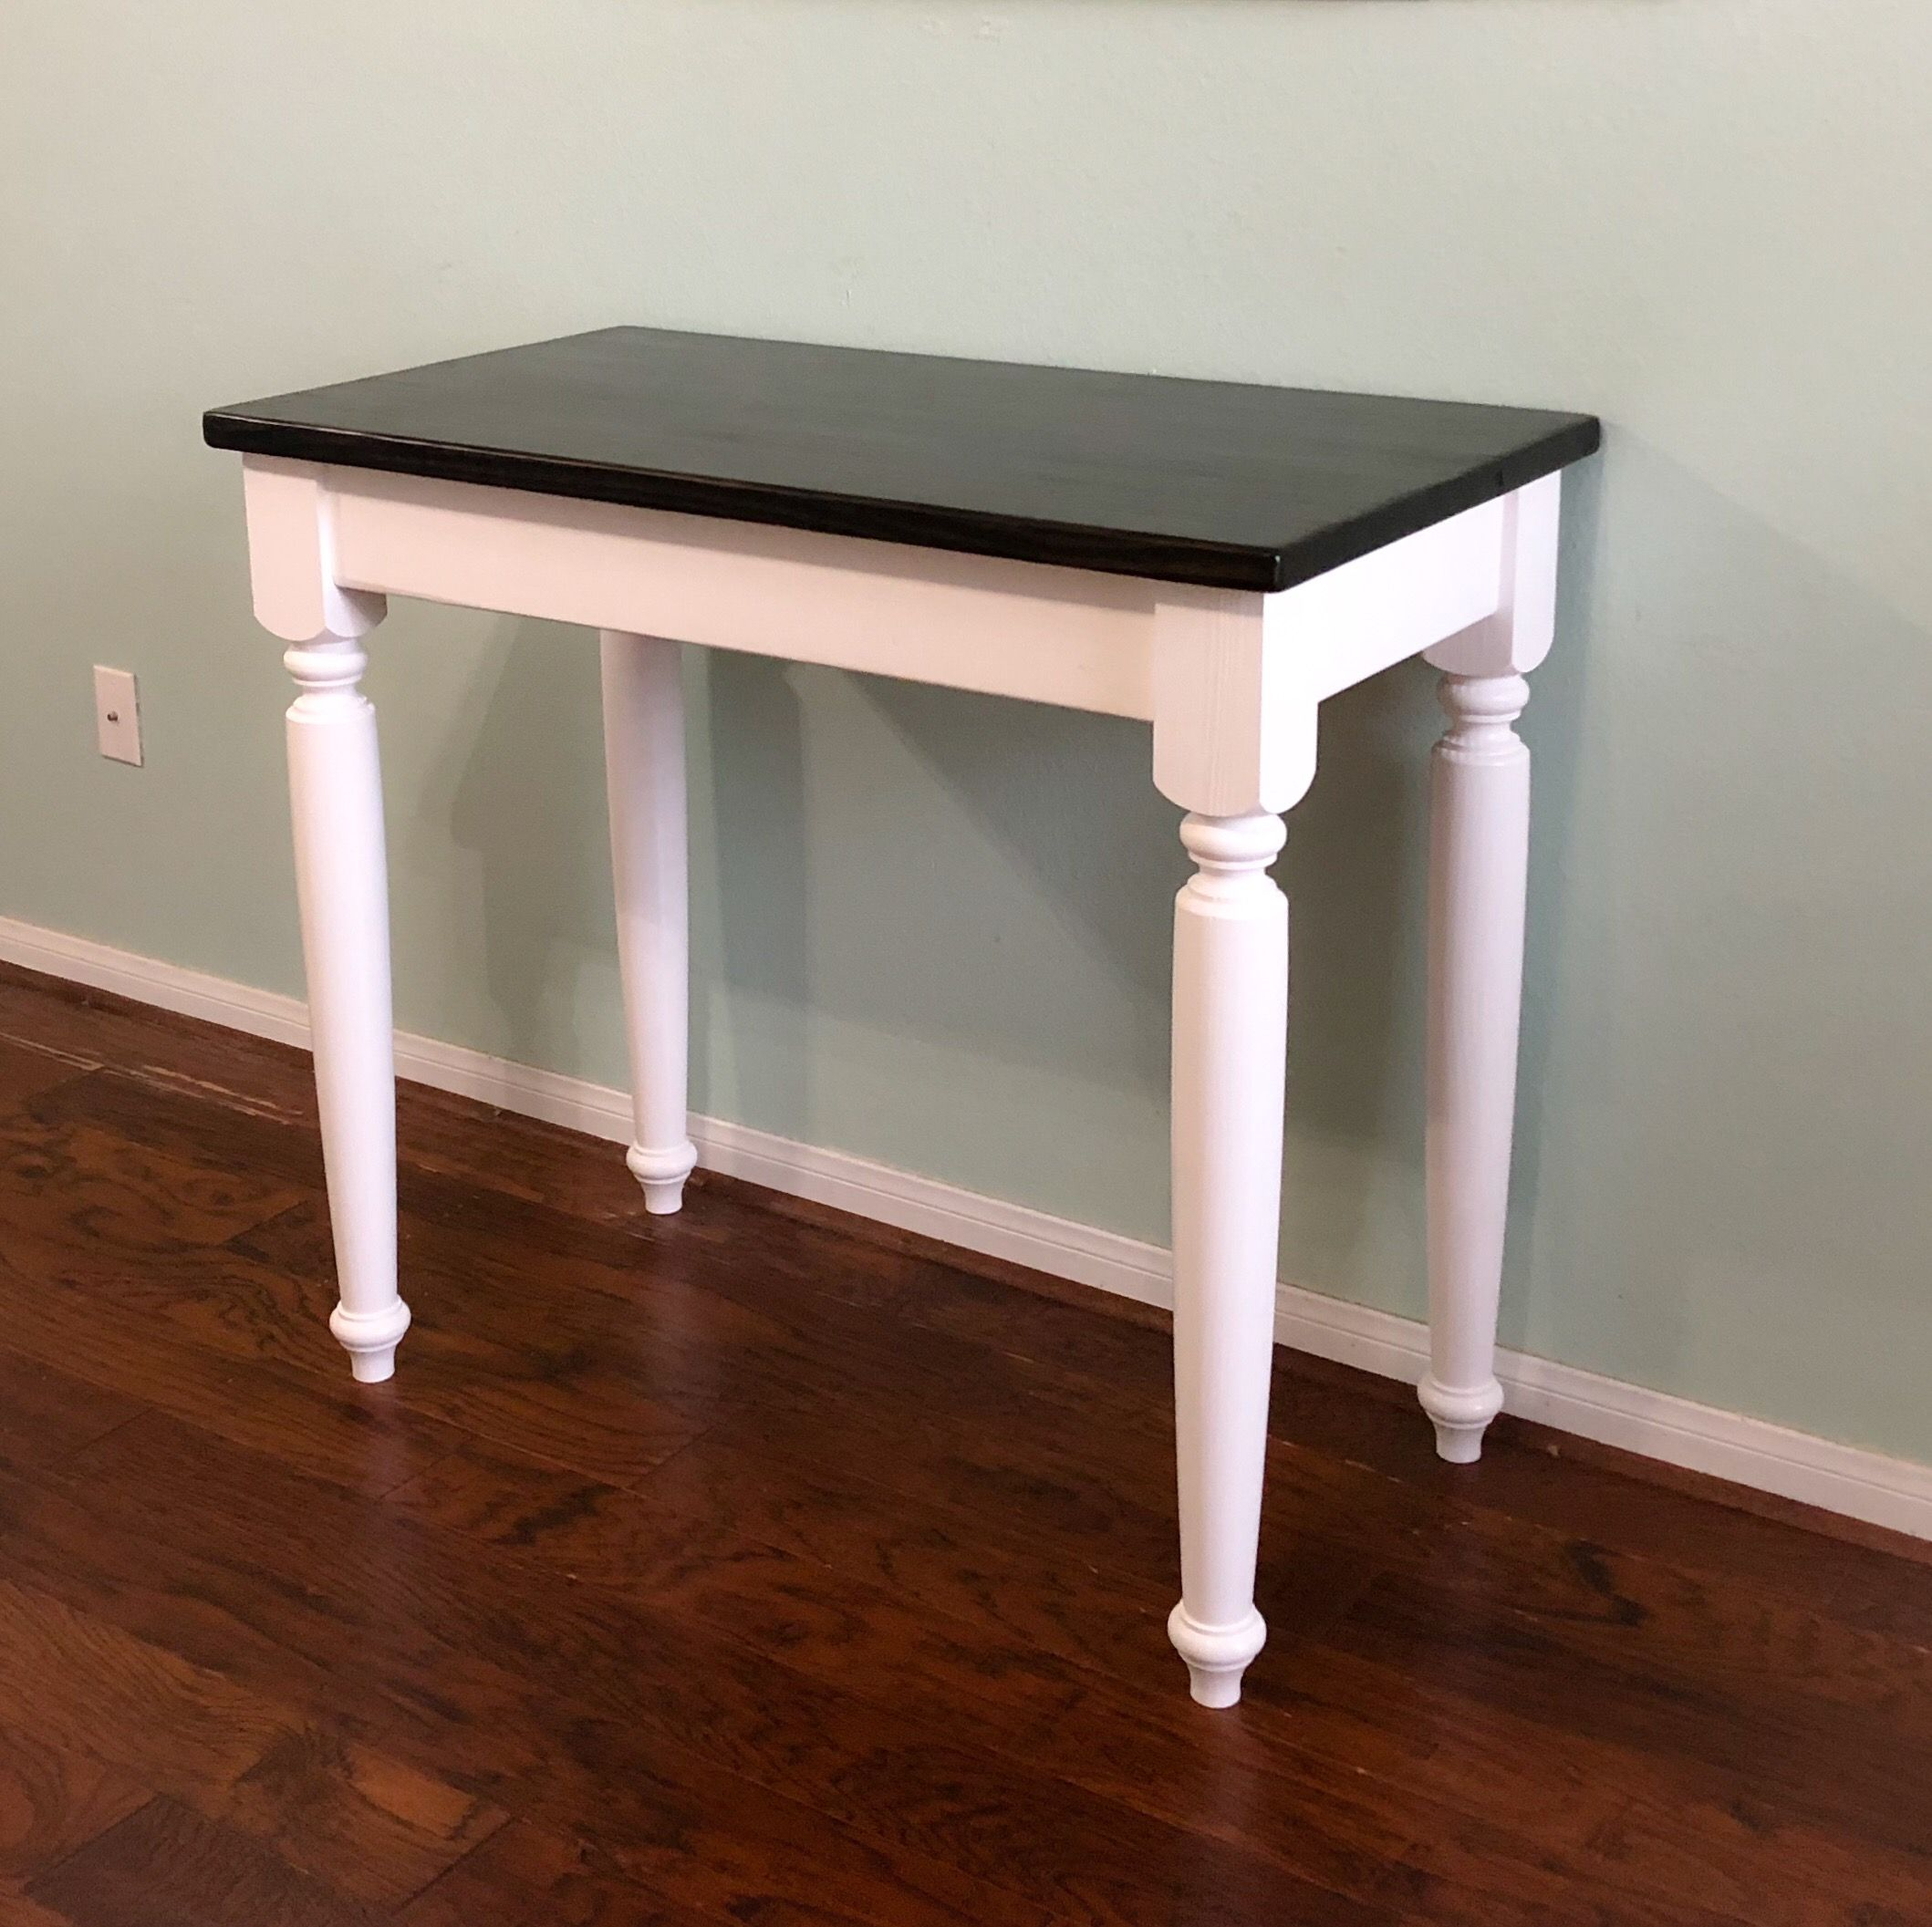 Decorating Smallspace Kitchen: Laundry Folding Table/Small Dining Table By Southern